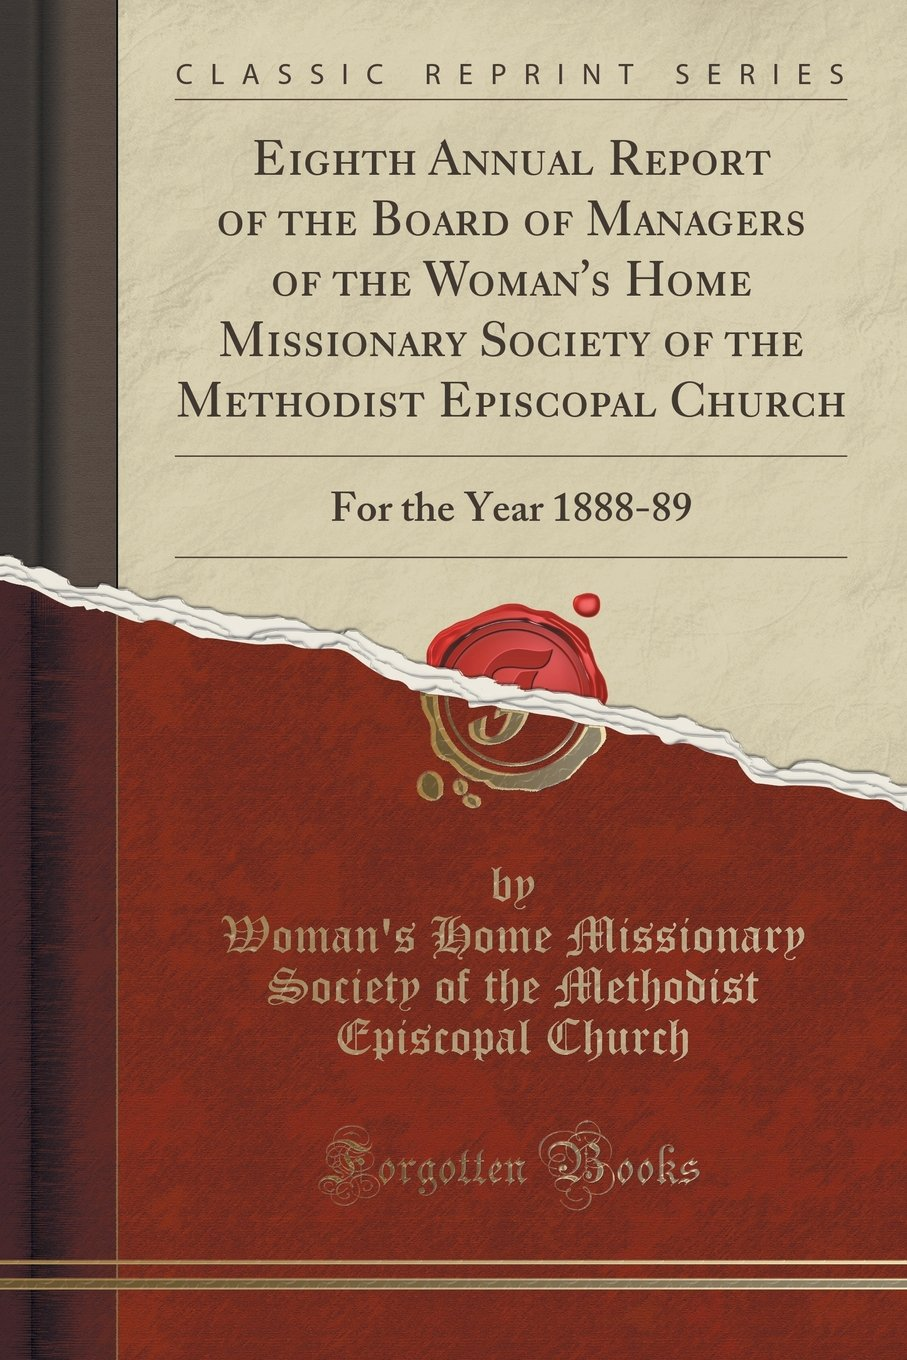 Download Eighth Annual Report of the Board of Managers of the Woman's Home Missionary Society of the Methodist Episcopal Church: For the Year 1888-89 (Classic Reprint) PDF